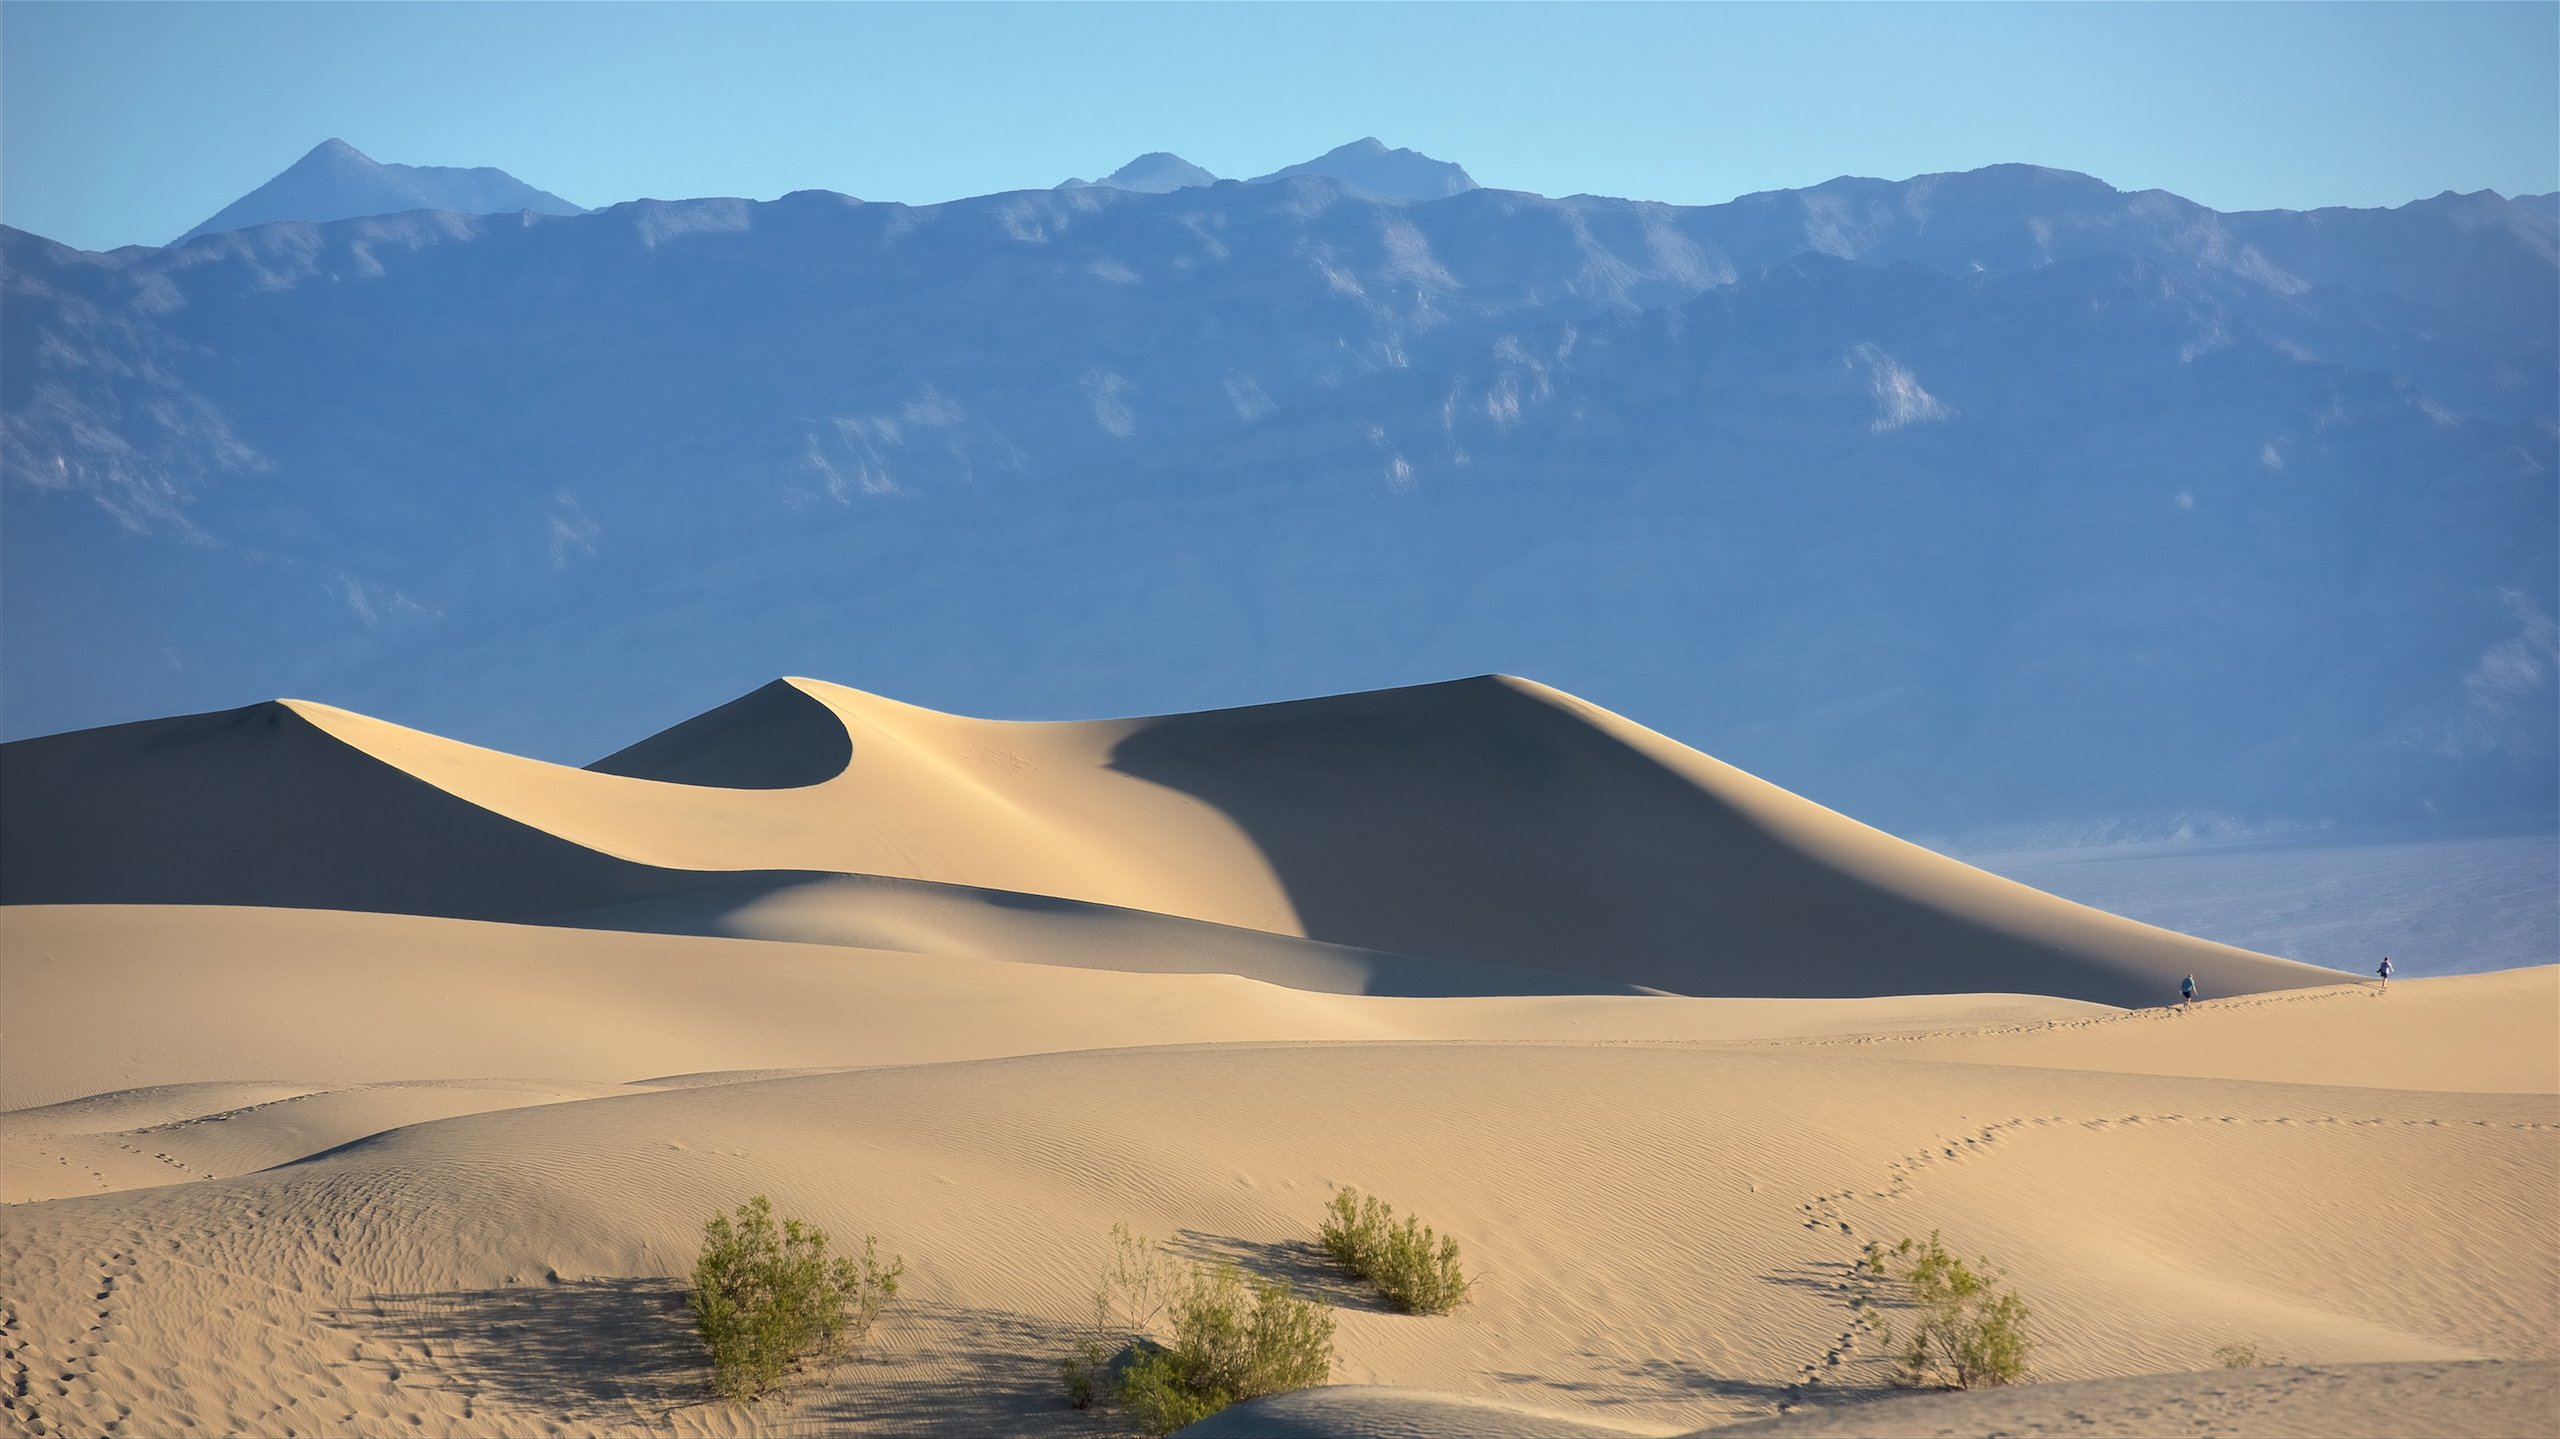 The 10 Best Hotels in Death Valley, California from $35 for